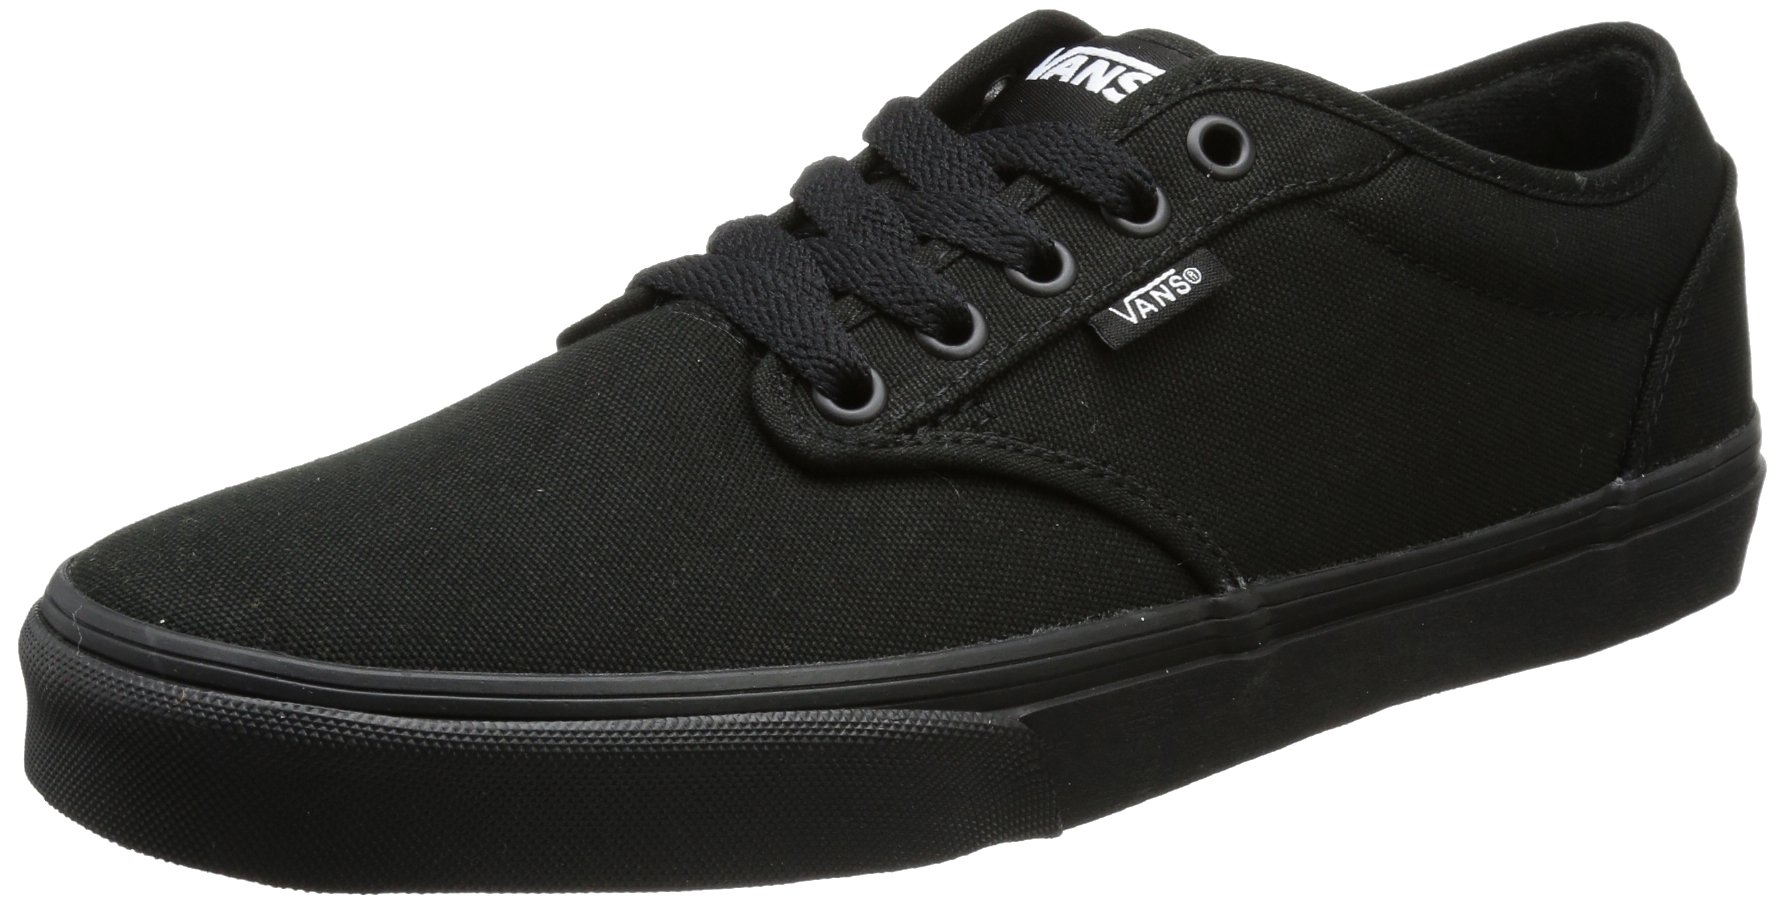 Vans Casual Shoes Amazon